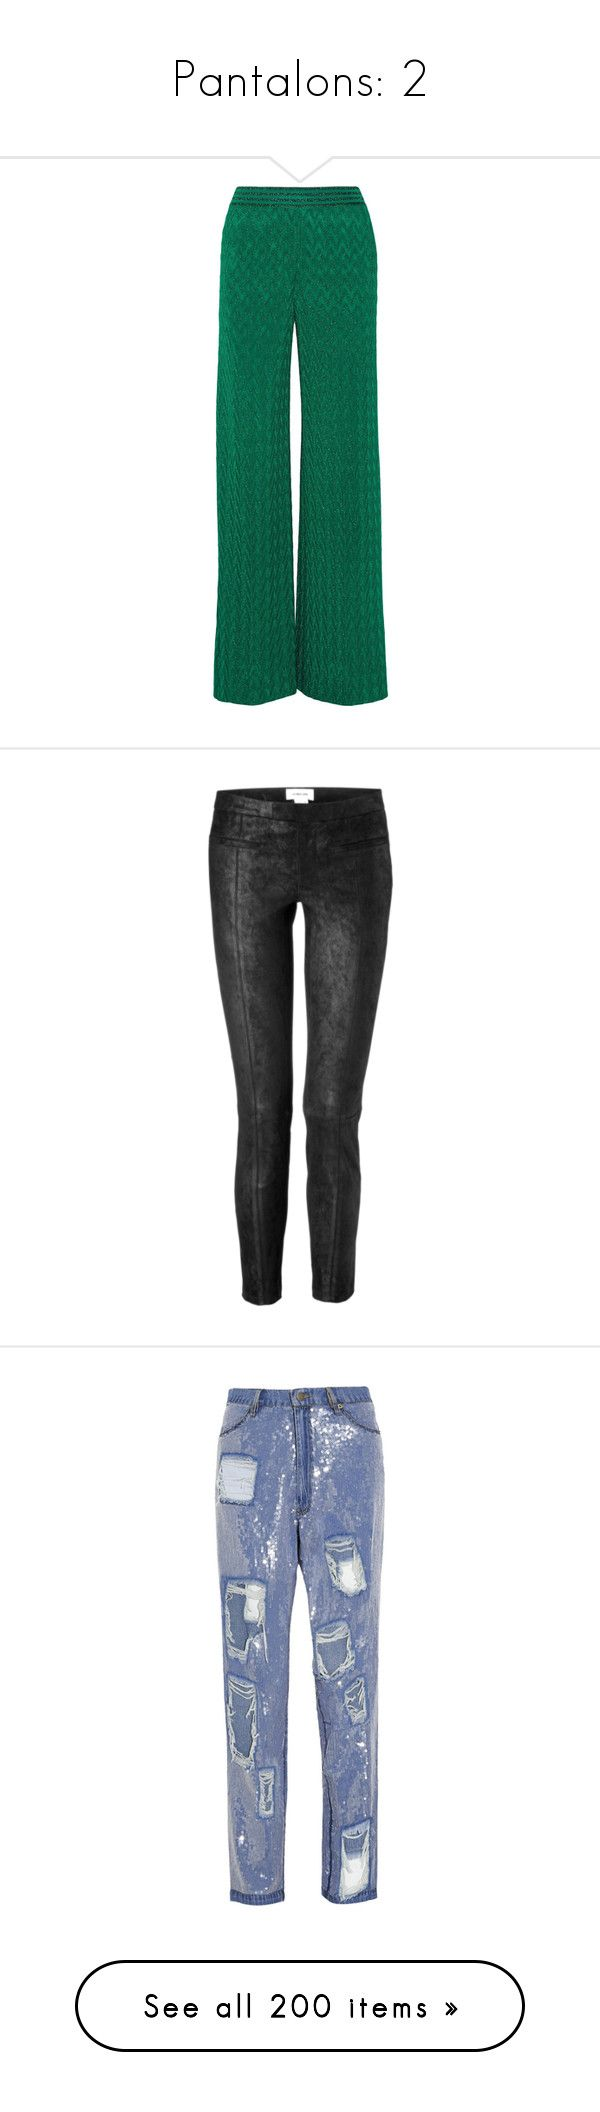 """""""Pantalons: 2"""" by laurie-2109 ❤ liked on Polyvore featuring pants, missoni, green, green trousers, metallic trousers, loose pants, green pants, wide-leg pants, helmut lang and stretch pants"""